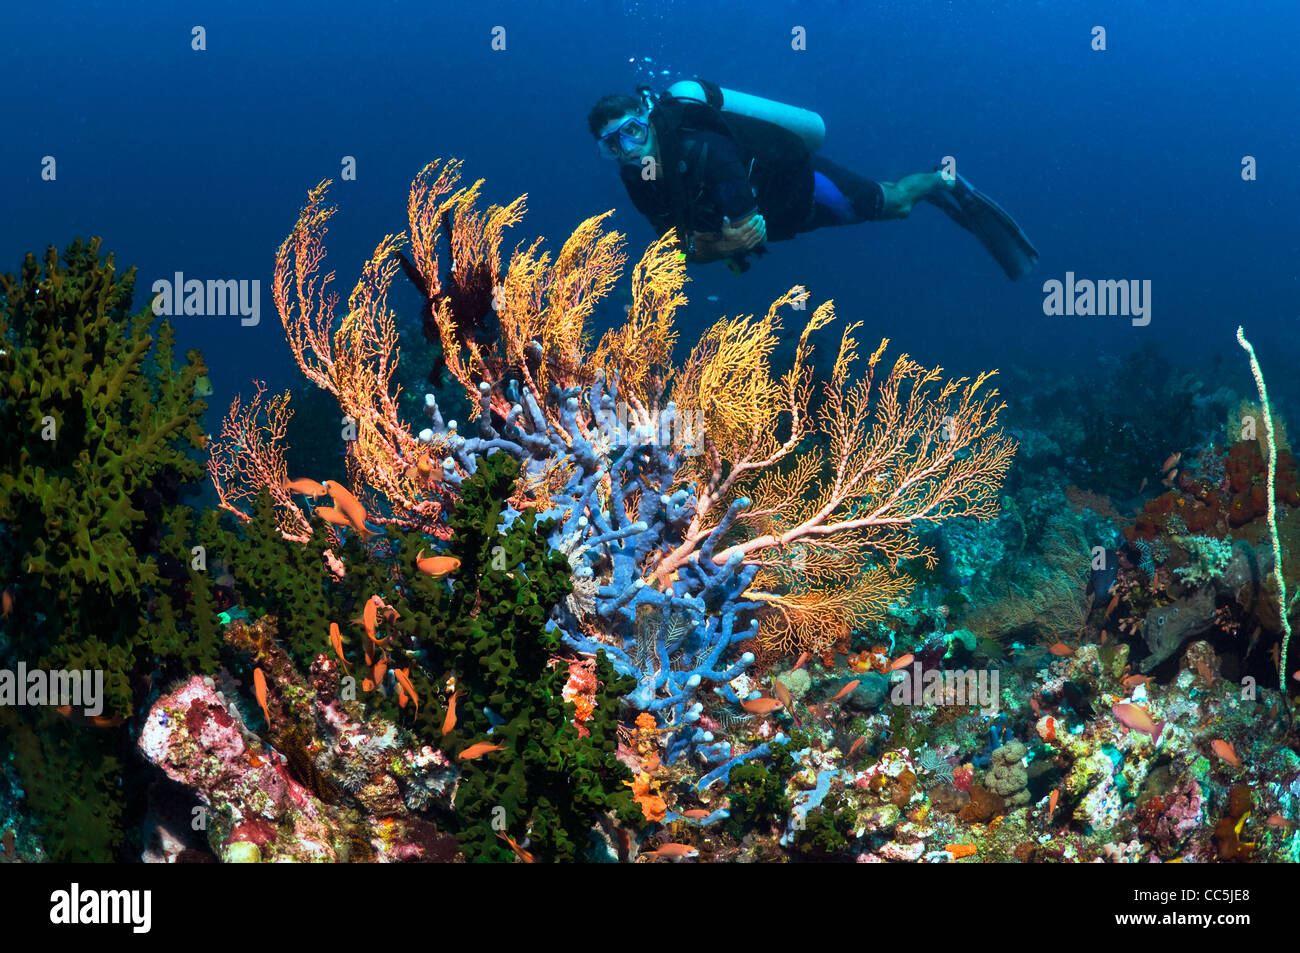 Gorgonians with diver on coral reef. Indonesia. - Stock Image